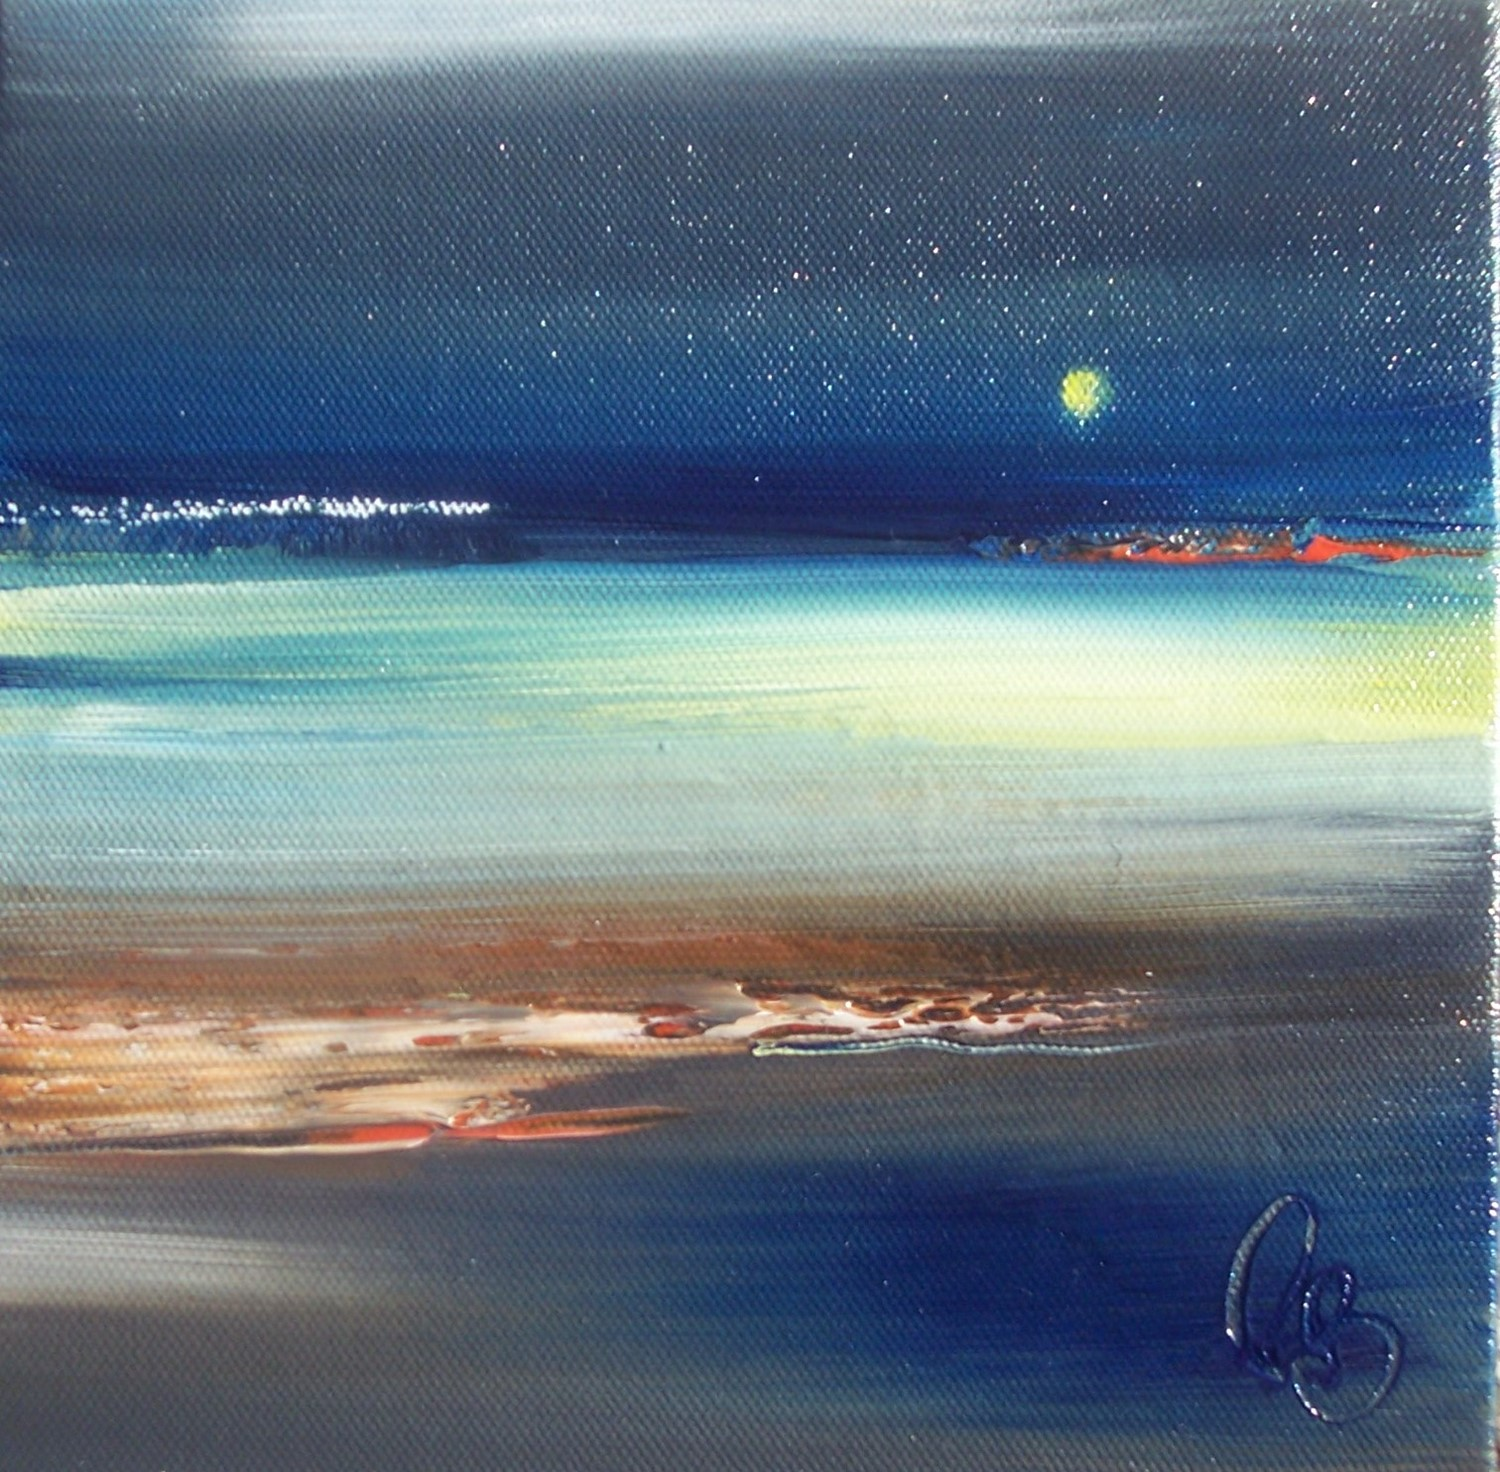 'NIGHT WALK' by artist Rosanne Barr